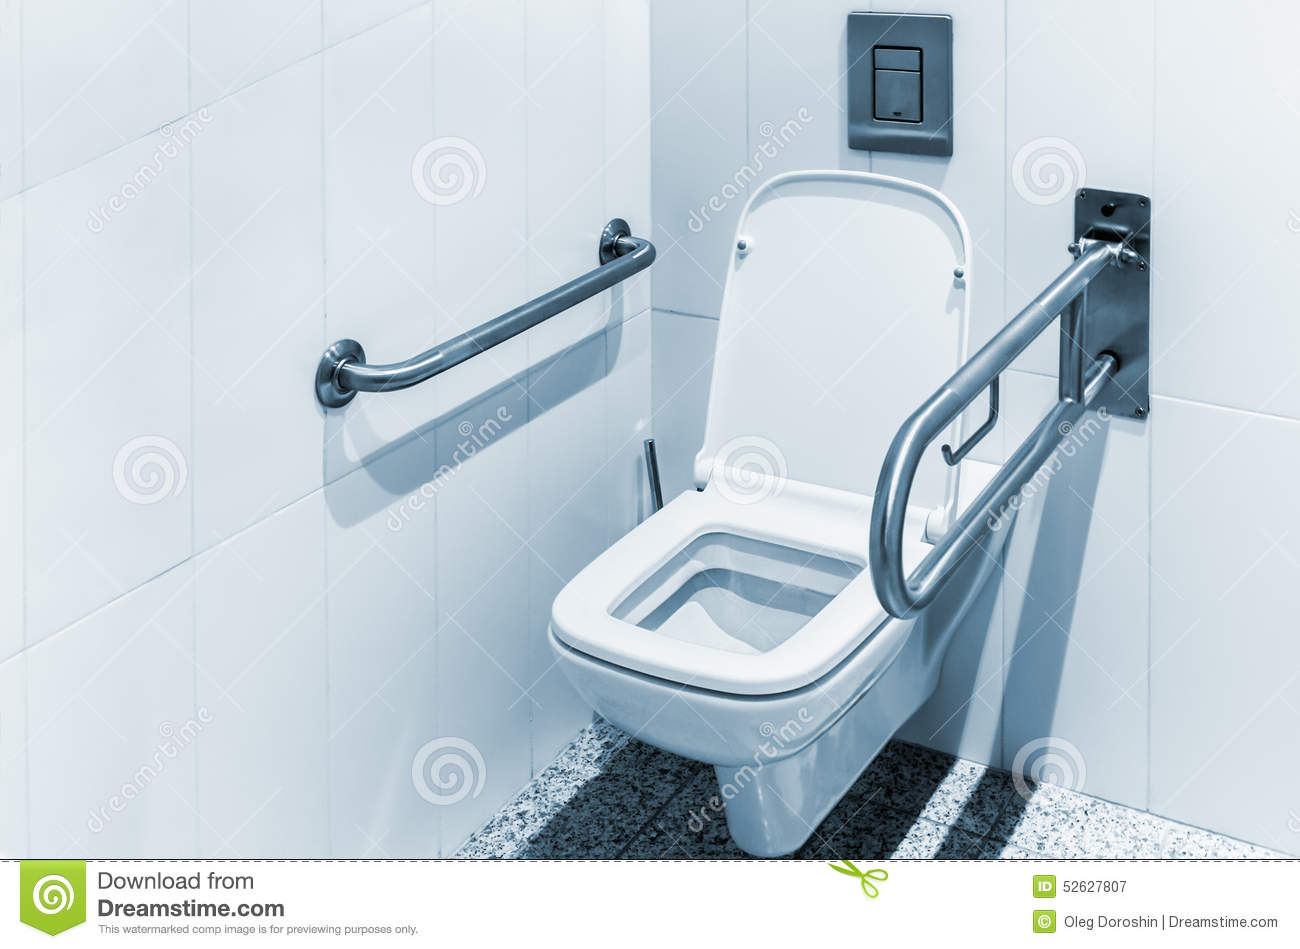 Toilet With Handrails For The Disabled Stock Image - Image of black ...